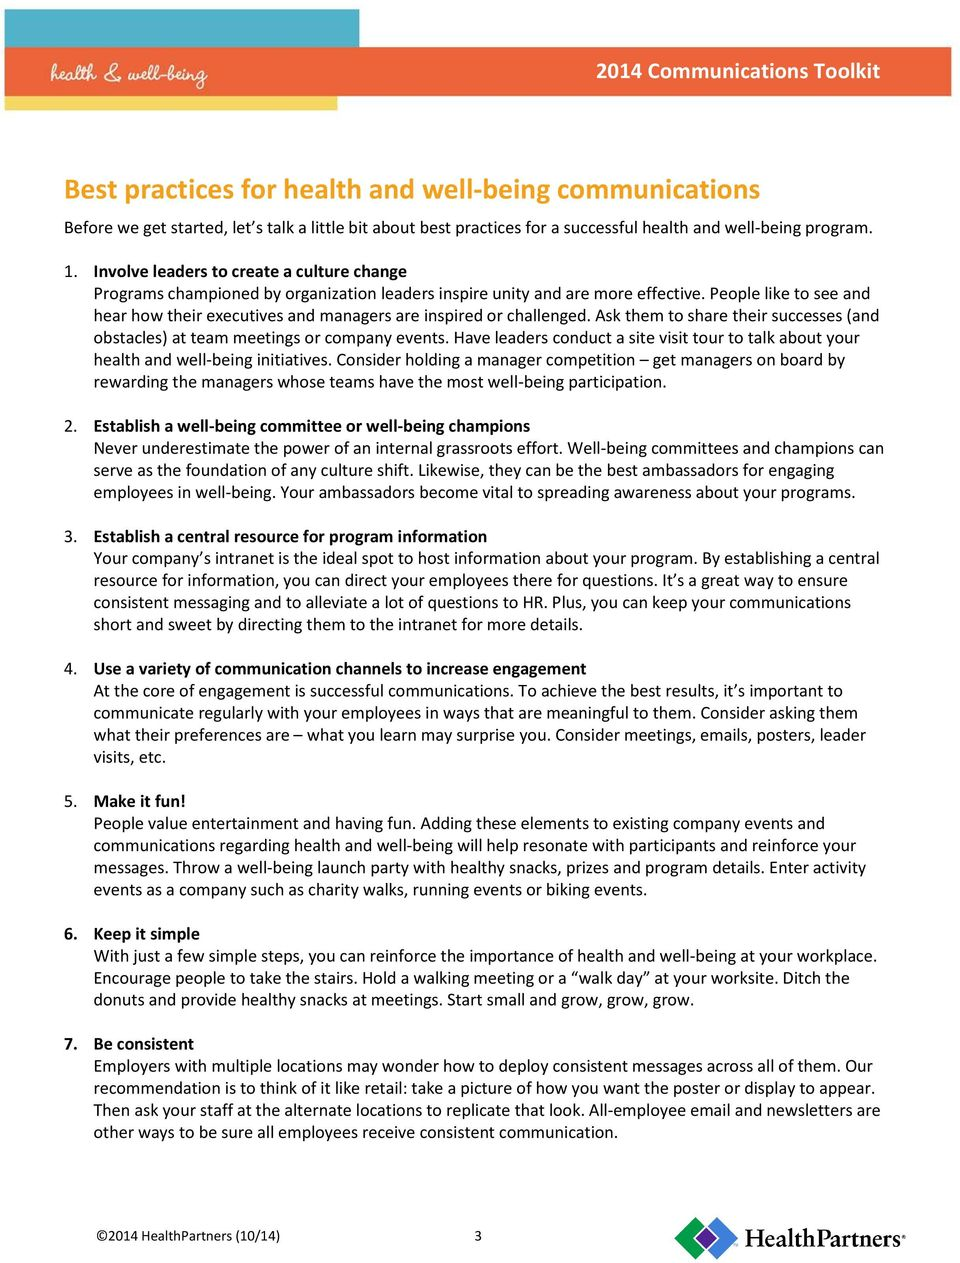 A best practices guide to health and well-being